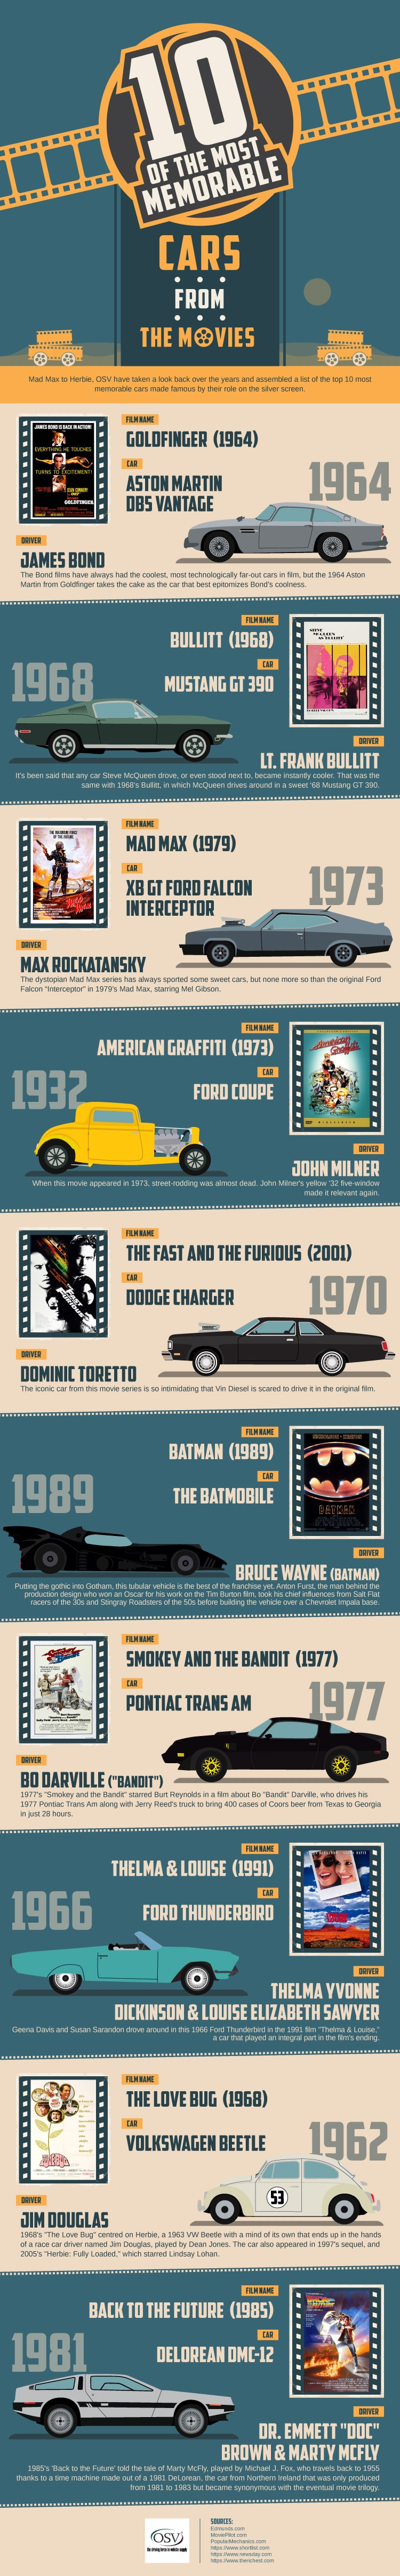 The 10 most memorable cars in the movies Infographic